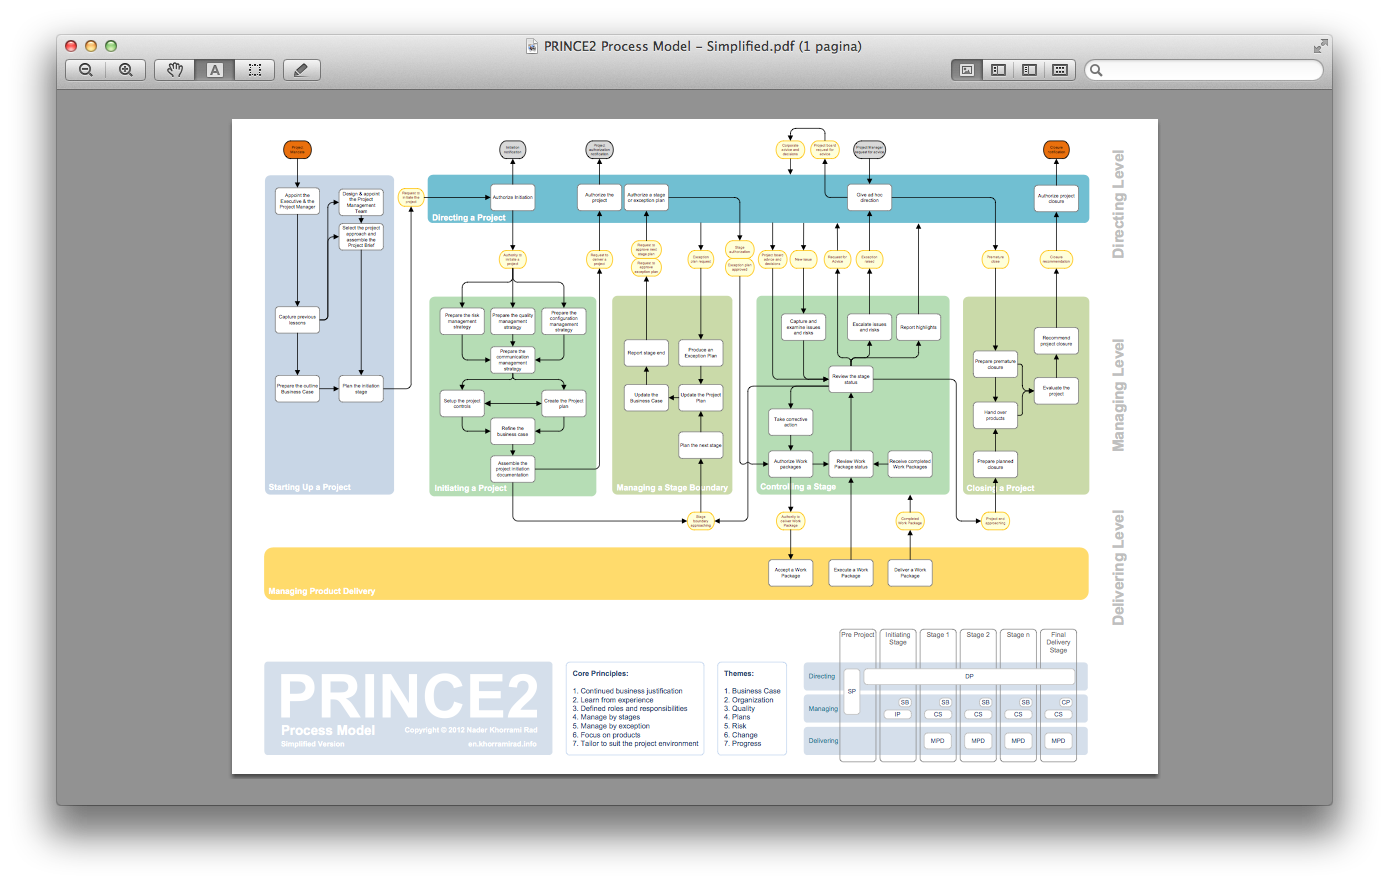 Prince2 in pictures henny portmans blog nader nvjuhfo Image collections